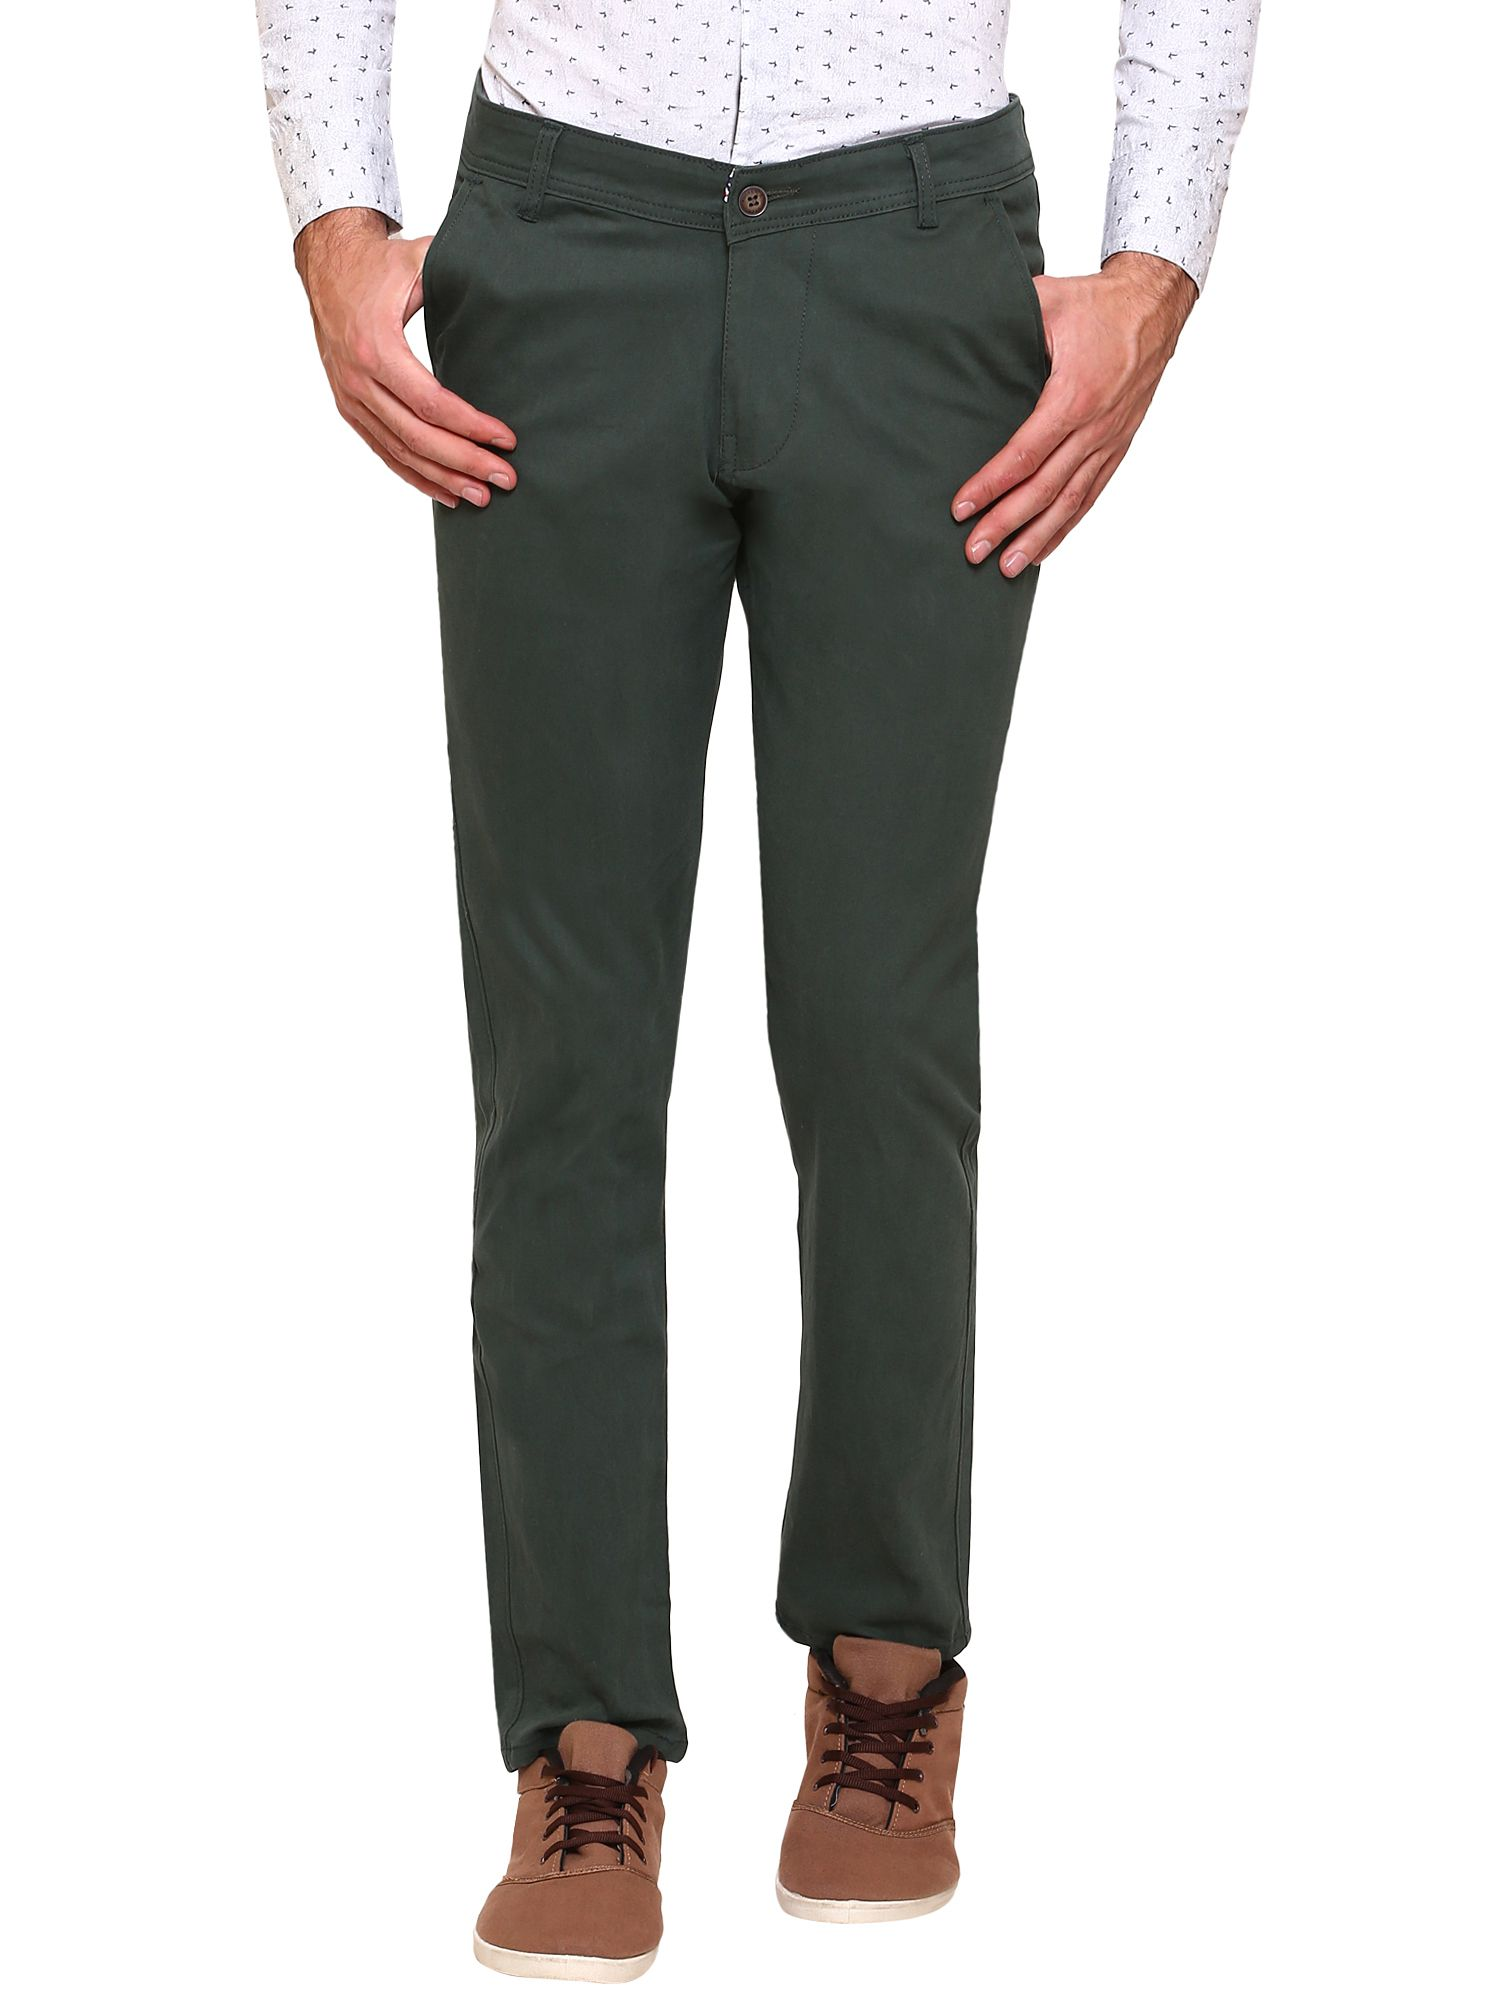 gradely Green Regular -Fit Flat Trousers